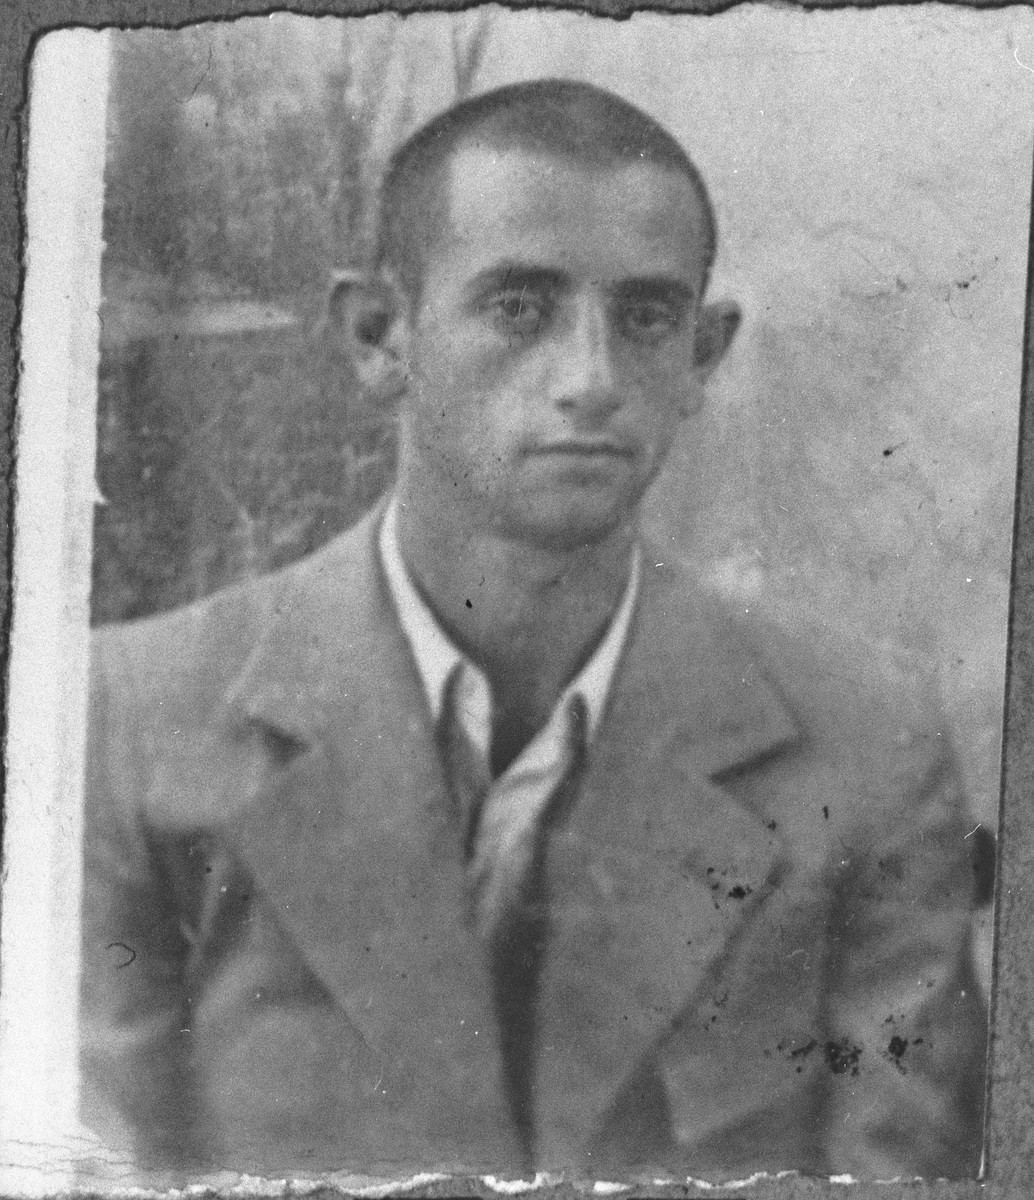 Portrait of Isak Kamchi, son of Mushon Kamchi.  He was a student.  He lived at Skopyanska 76 in Bitola.